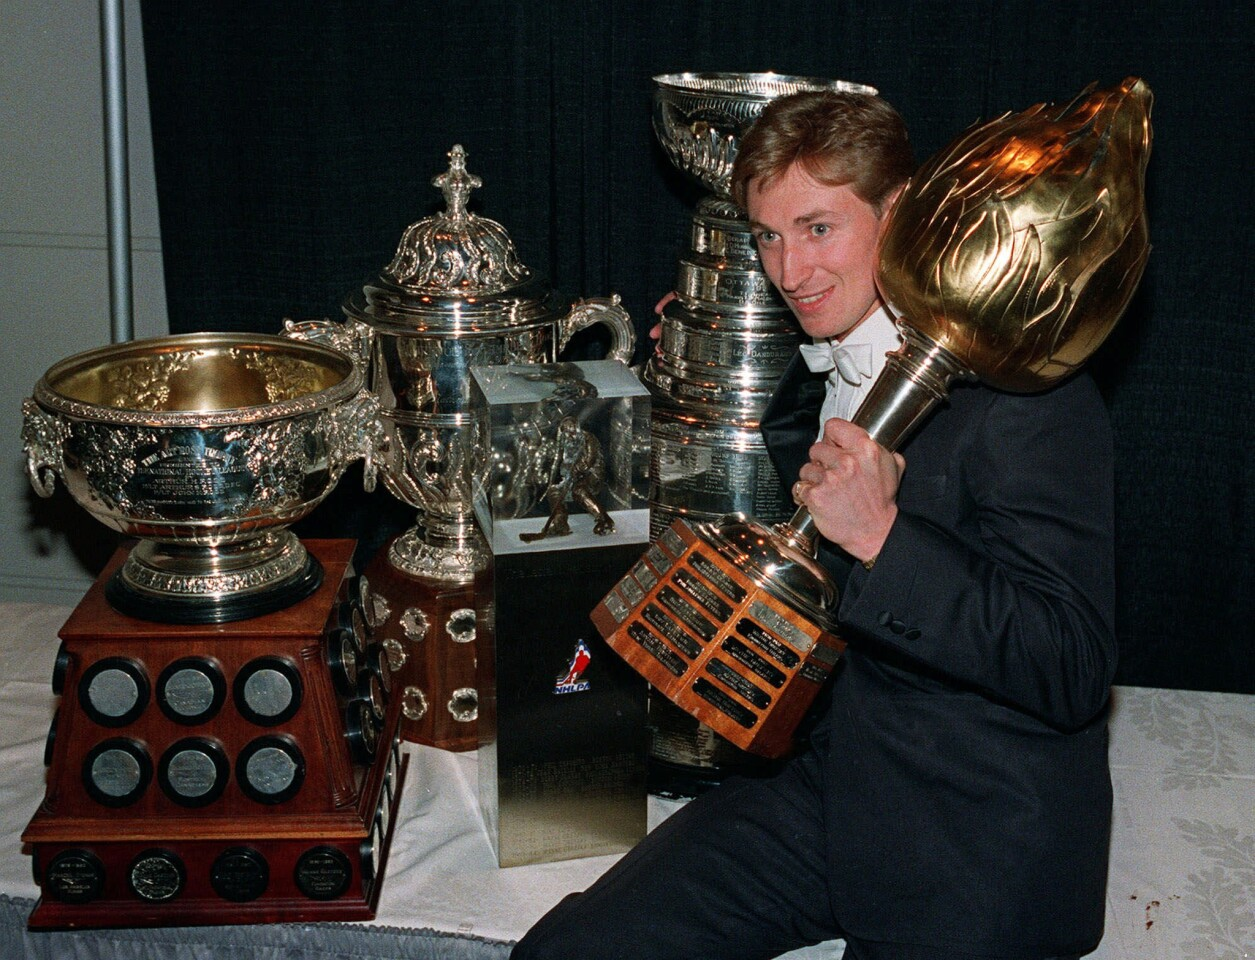 Oilers center Wayne Gretzky celebrates with five NHL trophies after the league awards presentation in Toronto on June 10, 1987. Trophies shown, from left, are Art Ross scoring leader, Campbell Conference winners, Leater B. Pearson selected by players, Lord Stanley's Cup, and Hart Trophy most valuable player.